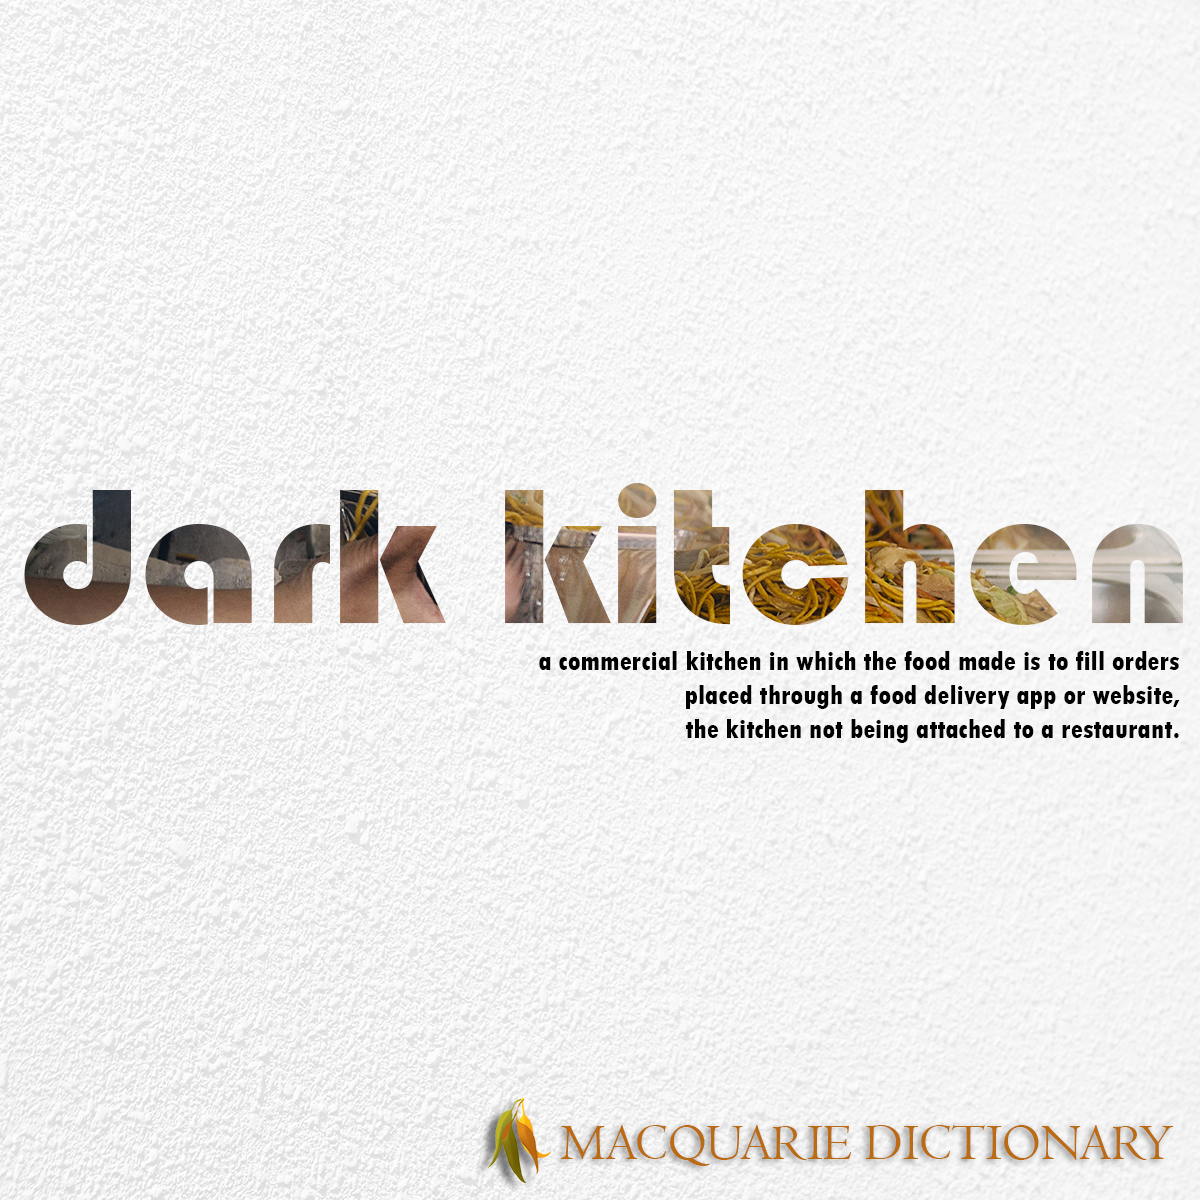 Image of Macquarie Dictionary Word of the Year - dark kitchen - a commercial kitchen in which the food made is to fill orders placed through a food delivery app or website, the kitchen not being attached to a restaurant.